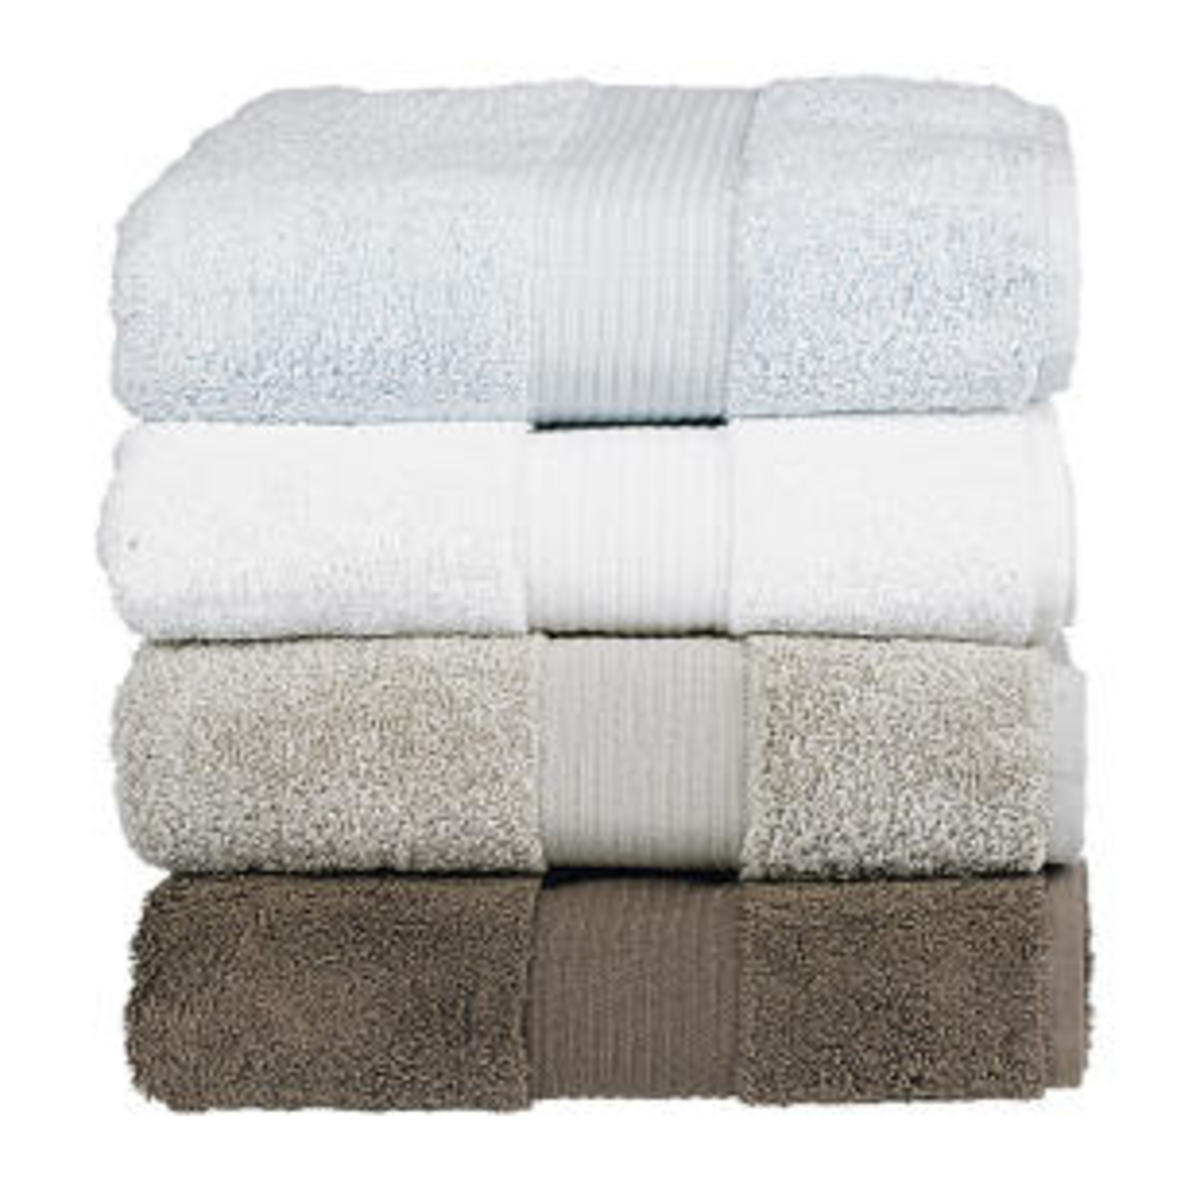 How To Make Towels Soft and Fluffy